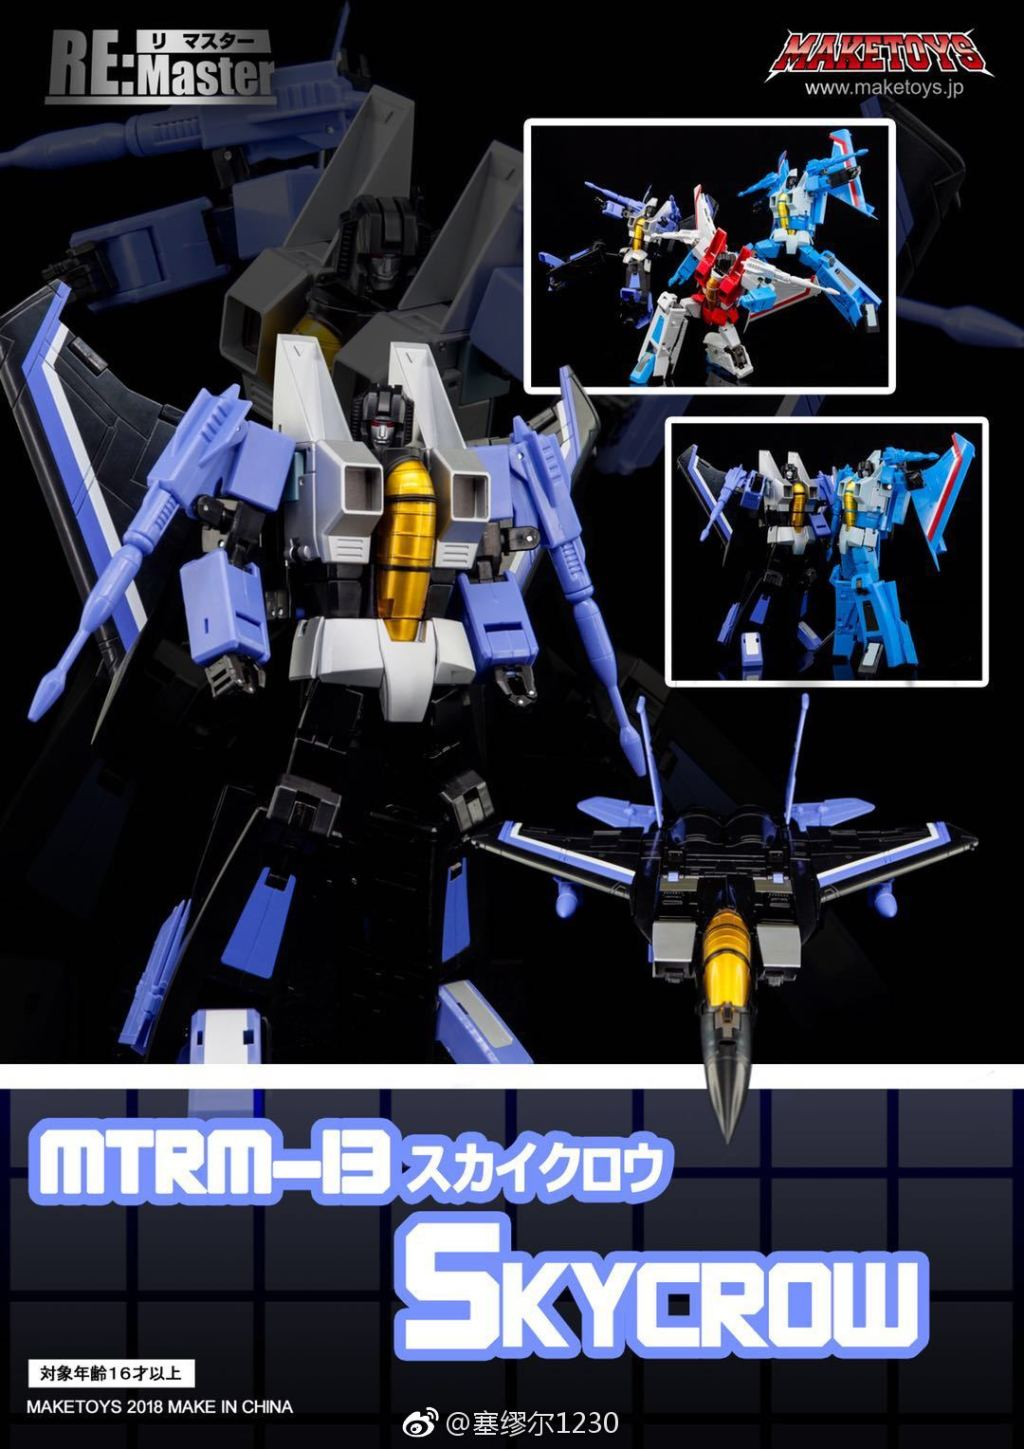 [Maketoys] Produit Tiers - MTRM - Seekers/Chasseurs Décepticons - Page 3 R3bnOSw7_o